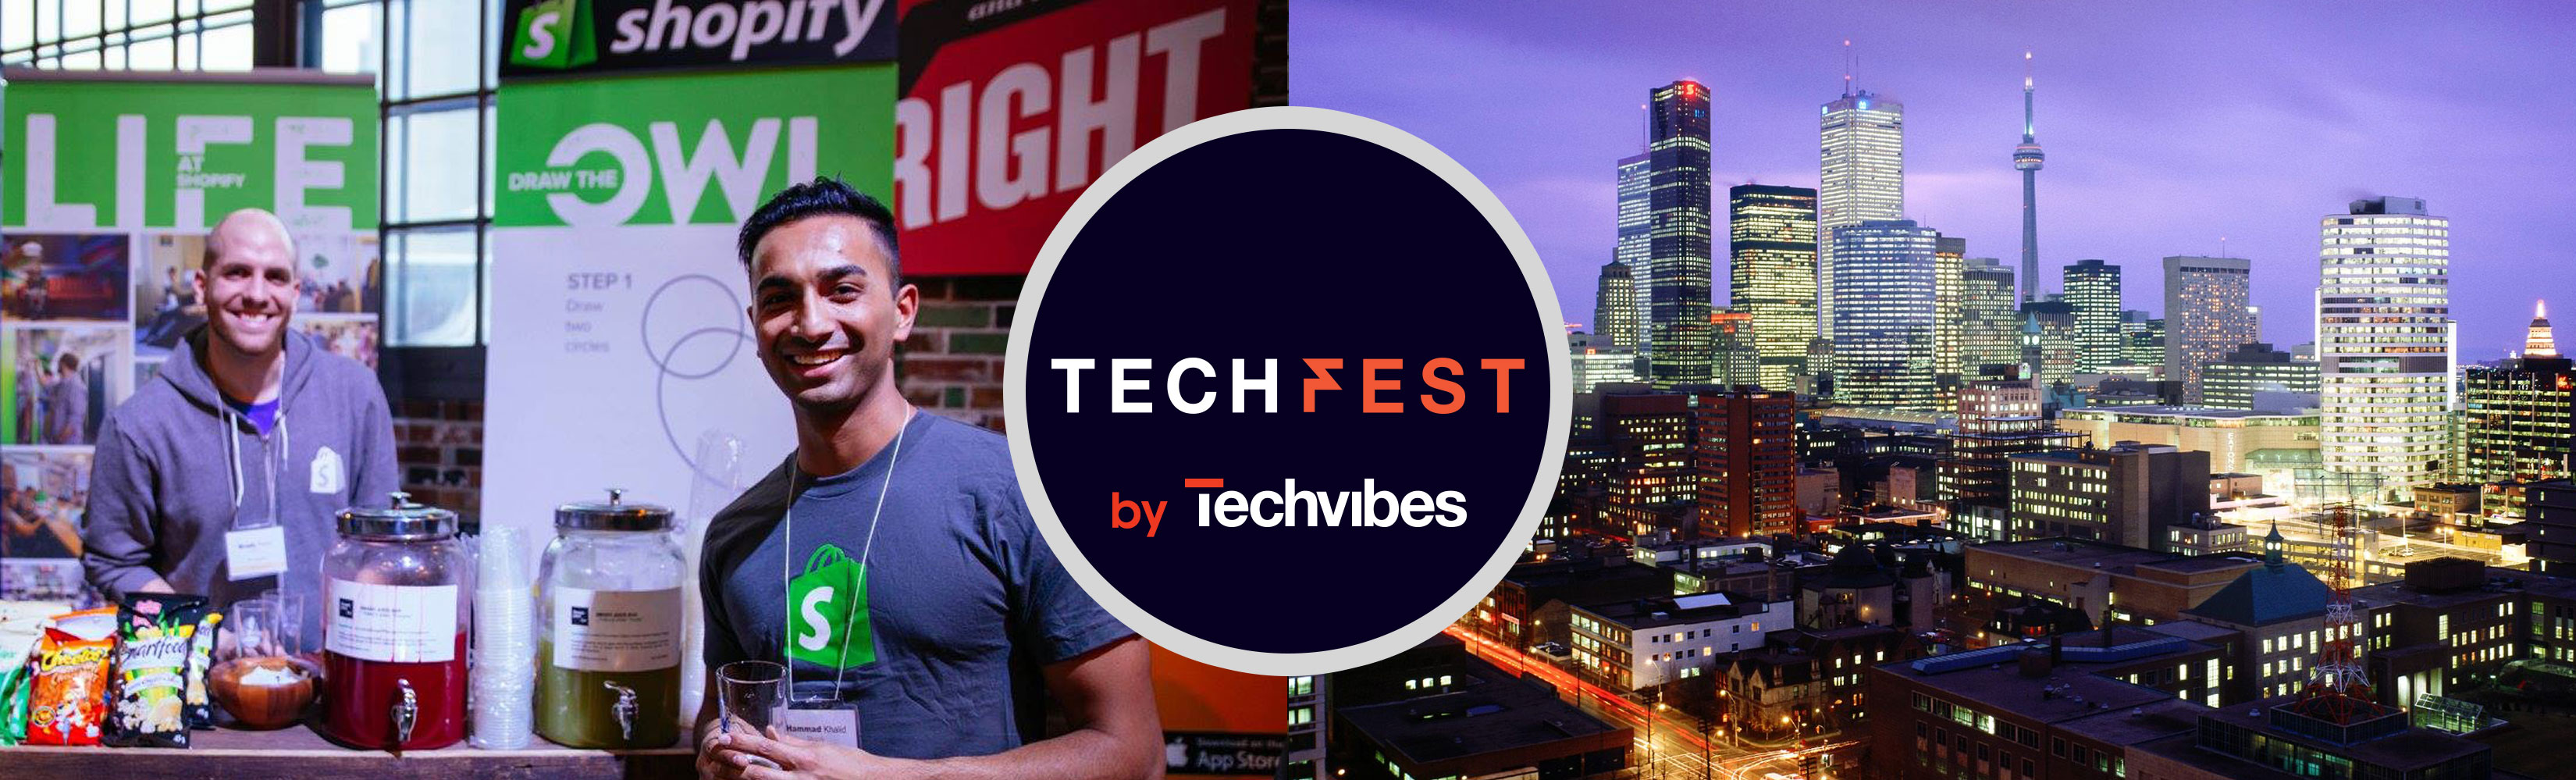 CD-website_Techfest_Header-2017